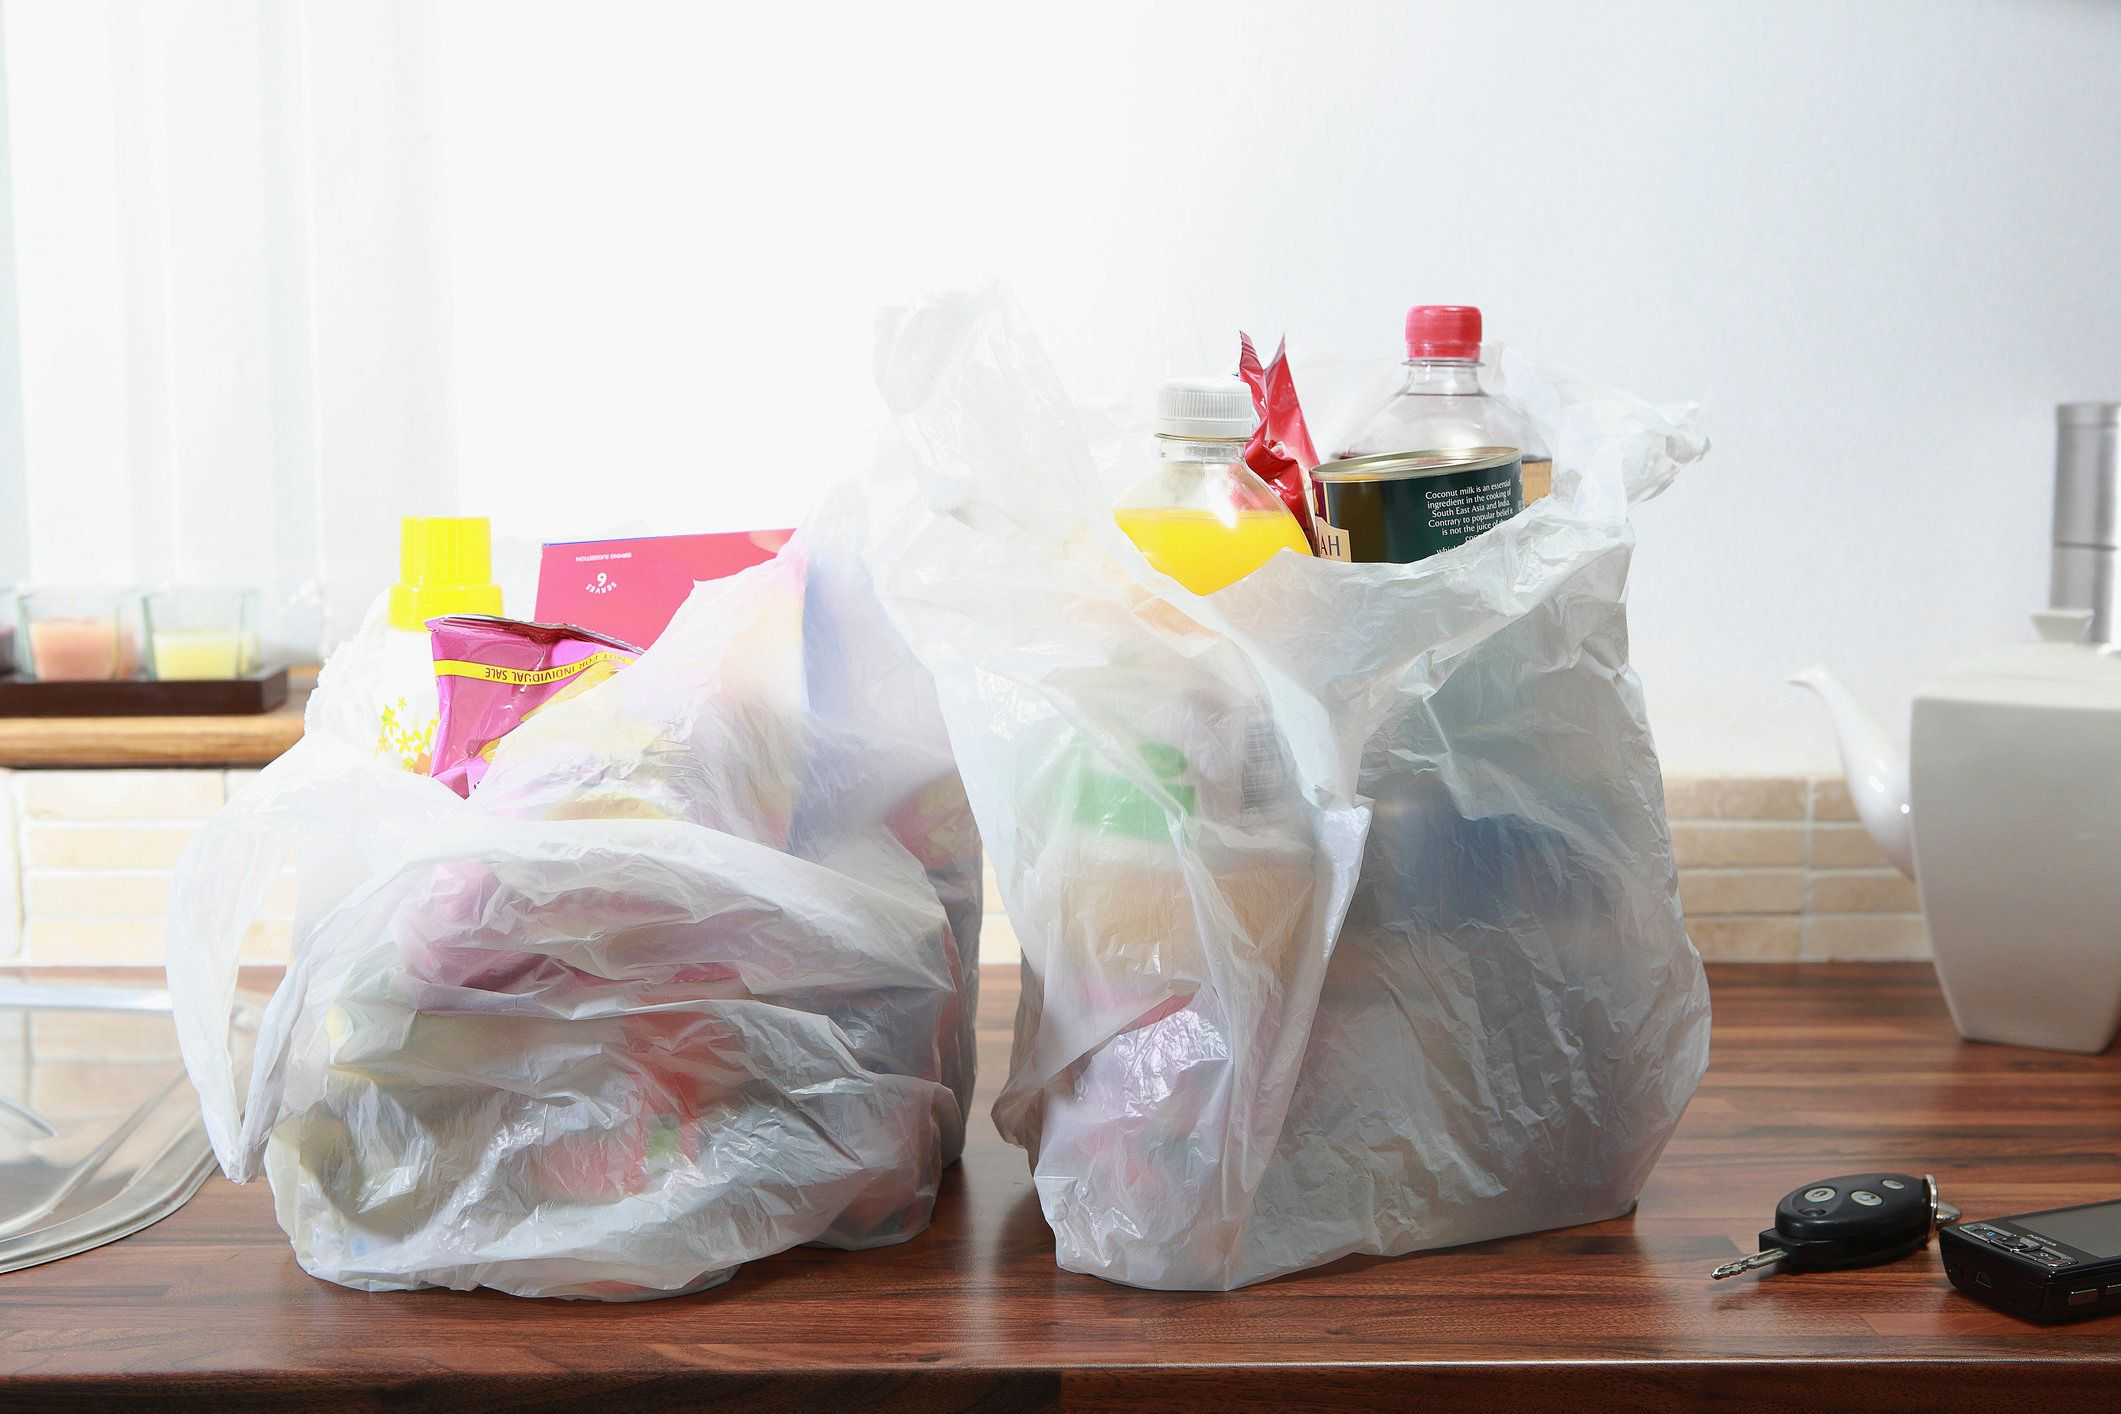 Domestic waste: large amount of packaging on domestic products